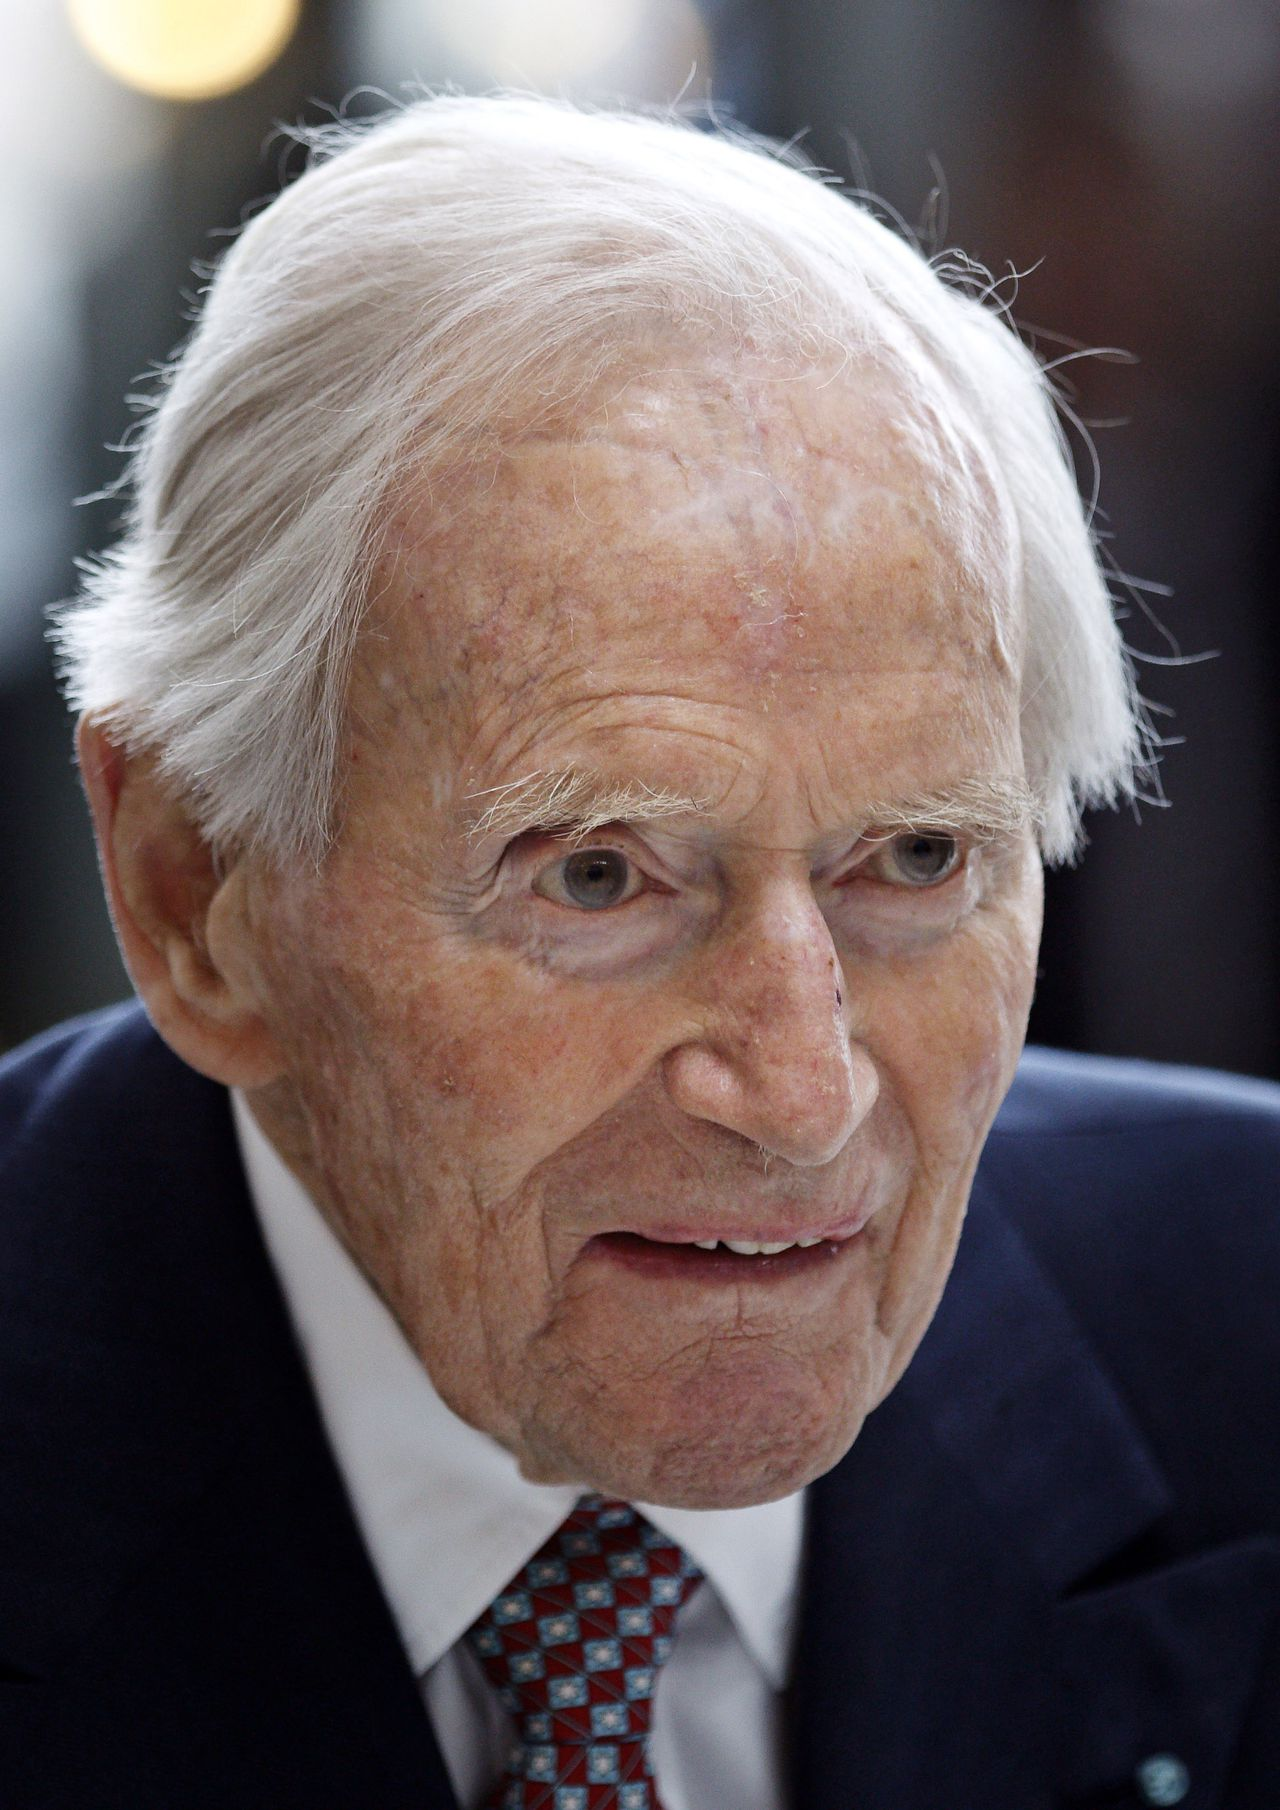 FILE - In this April 4, 2011, file photo of Danish ship-owner Arnold Maersk Mc-Kinney Moeller, who has died it is announced Monday April, 16, 2012. Arnold Maersk Mc-Kinney Moeller, the Dane who created the global shipping and oil conglomerate A.P. Moller-Maersk A/S, died Monday at the age of 98, his company said. Maersk Mc-Kinney Moeller undertook the daily management of the company until 1993 and became chairman of A.P. Moeller – Maersk A/S until 2003. (AP PHOTO/POLFOTO, Jens Dresling) DENMARK OUT